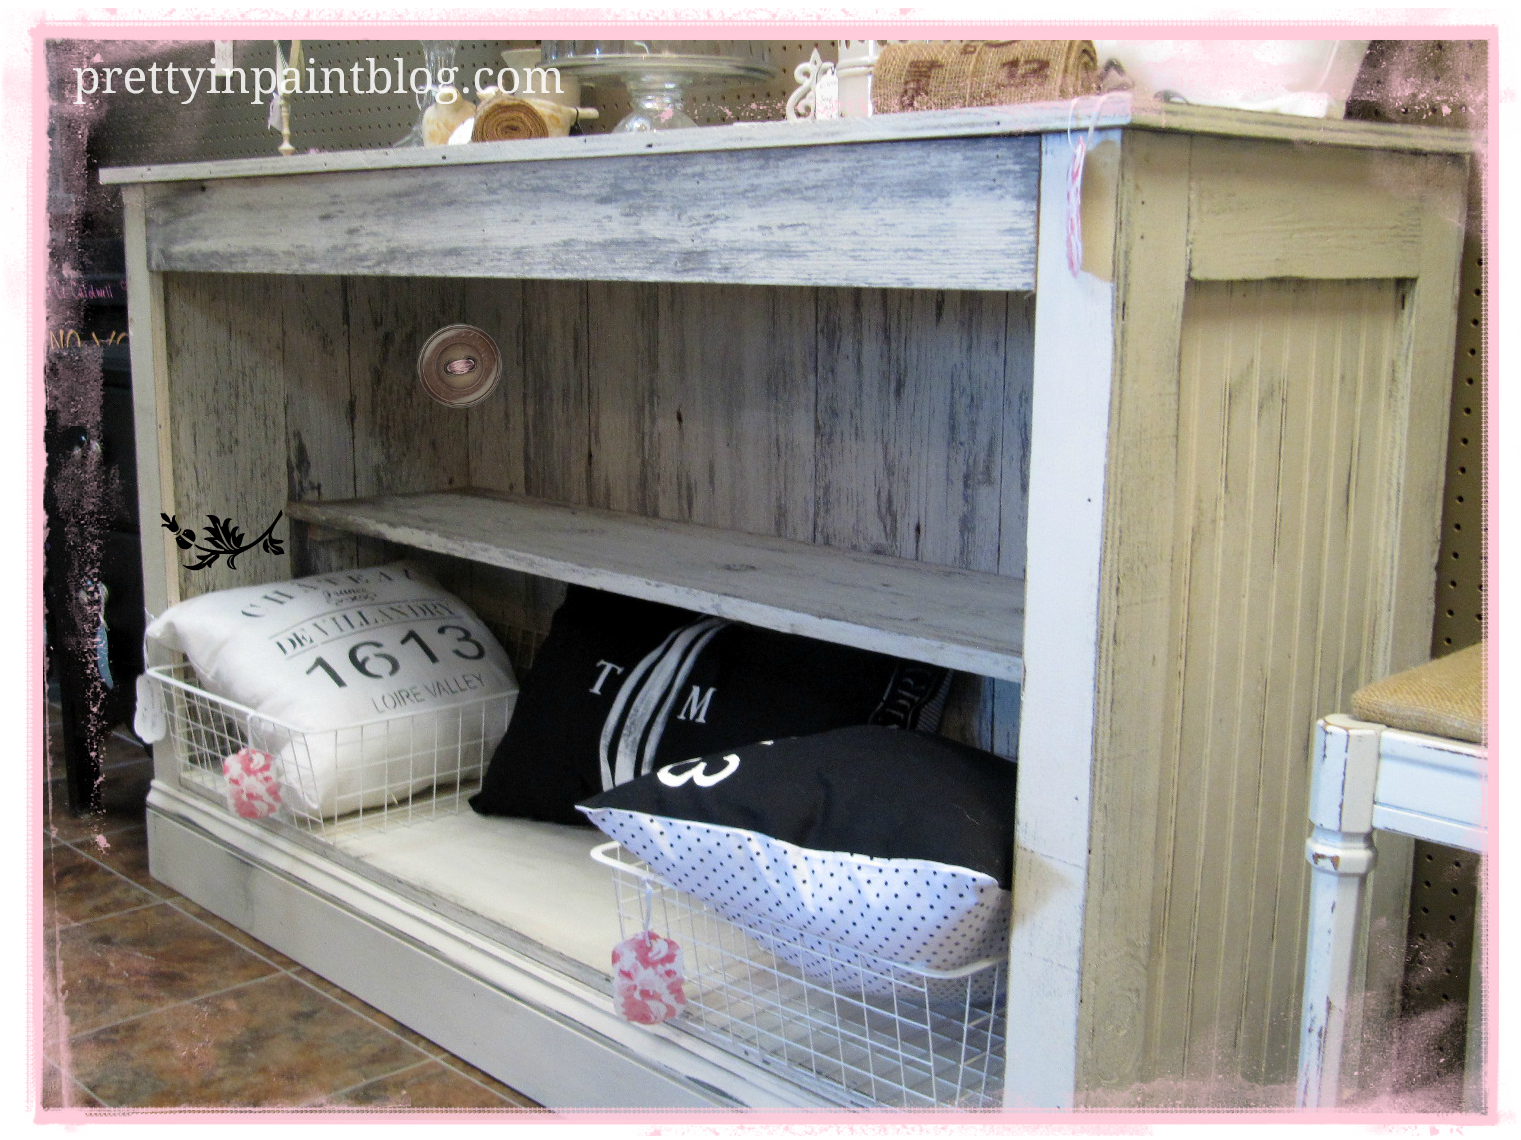 Pretty In Paint: Barn Wood to Custom Furniture {Upcycling